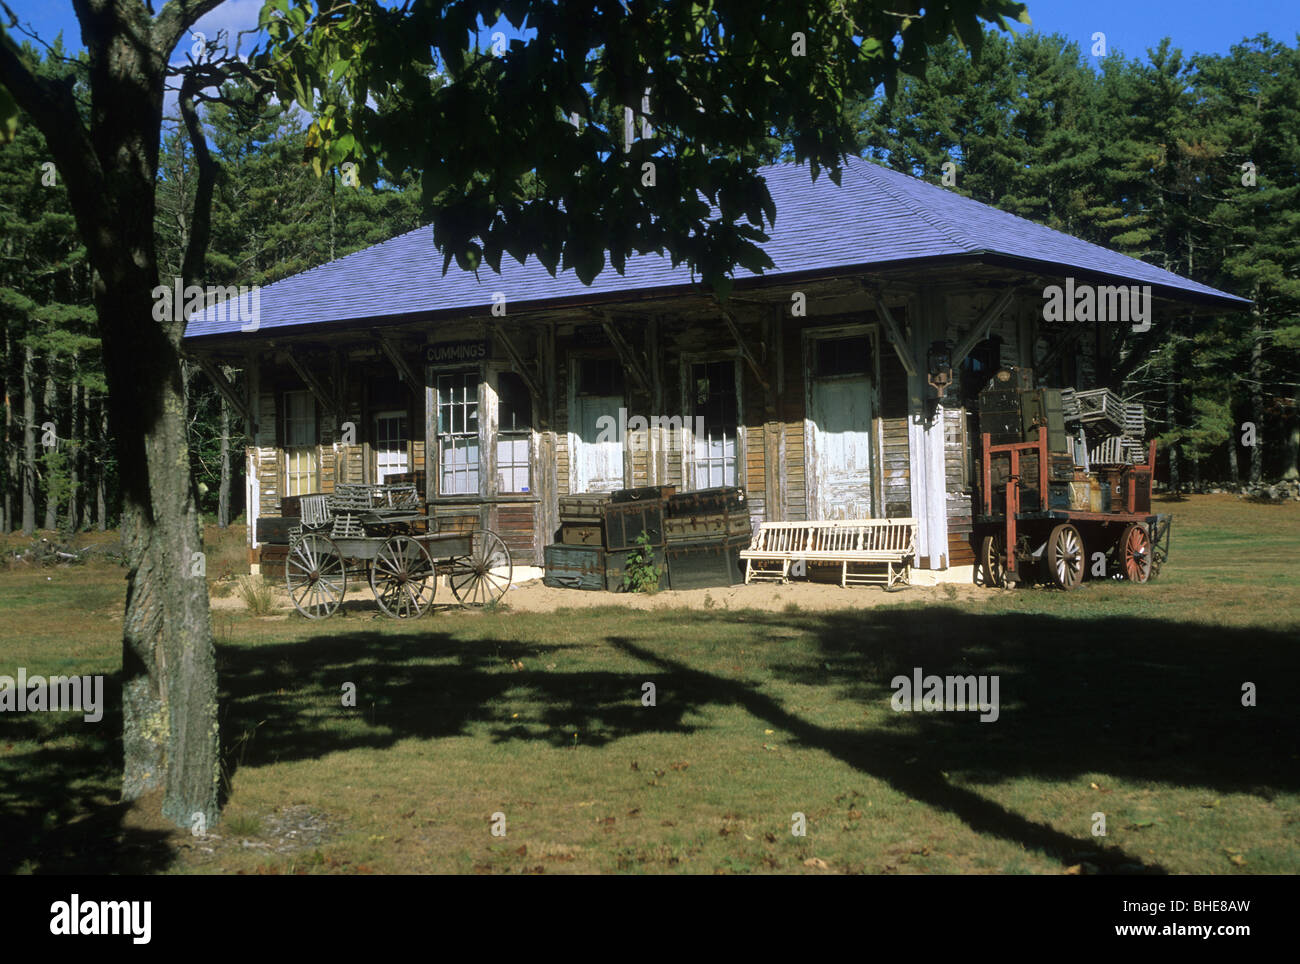 maine all campground cheap update rates sandy resort cottages galleries rental vacation in allowed gallery wells daily drakes beach pets